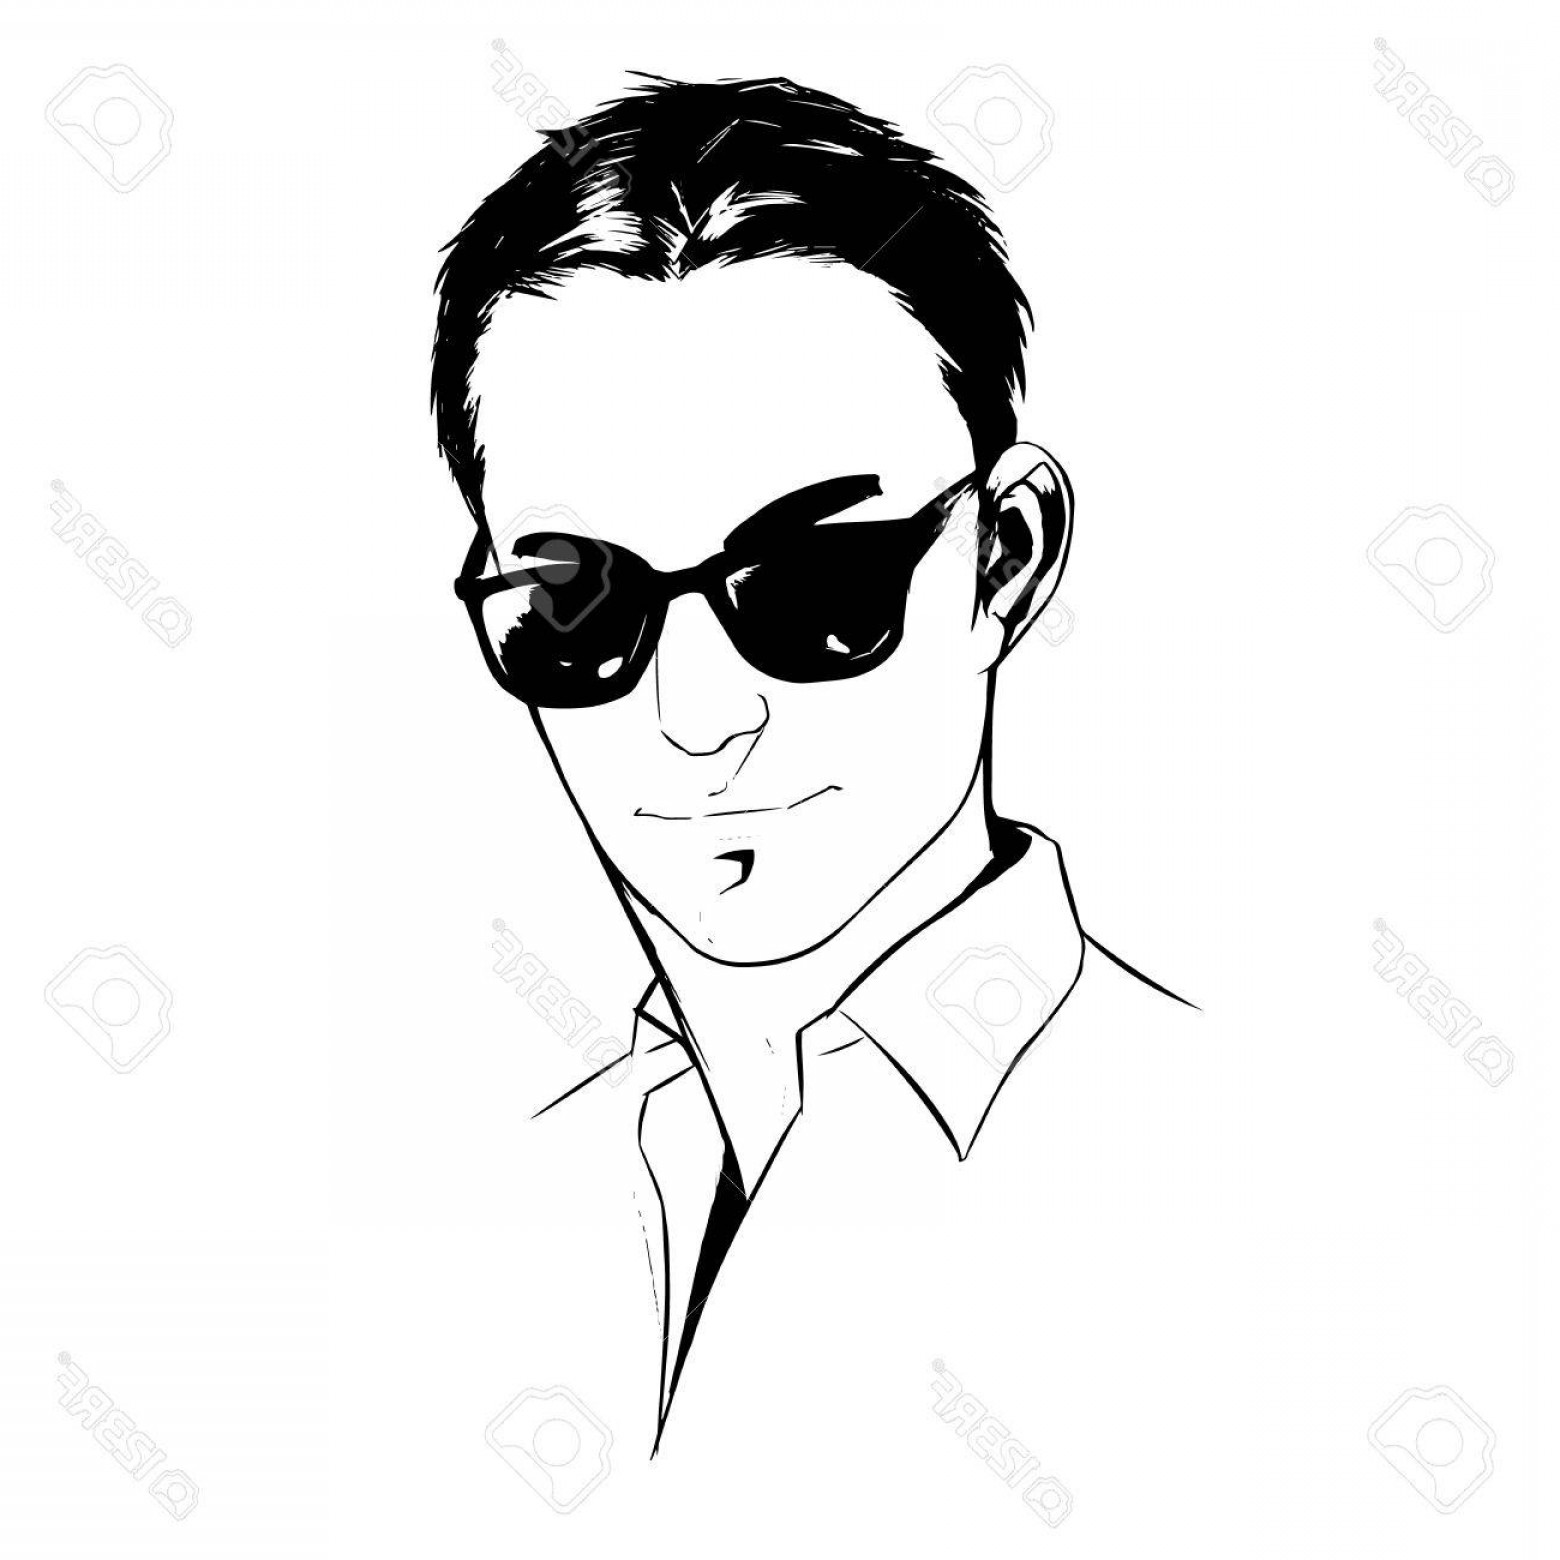 Handsome Man Vector Outline: Photoillustration Portrait Of A Handsome Young Man On White Background Graphic Vector Eps